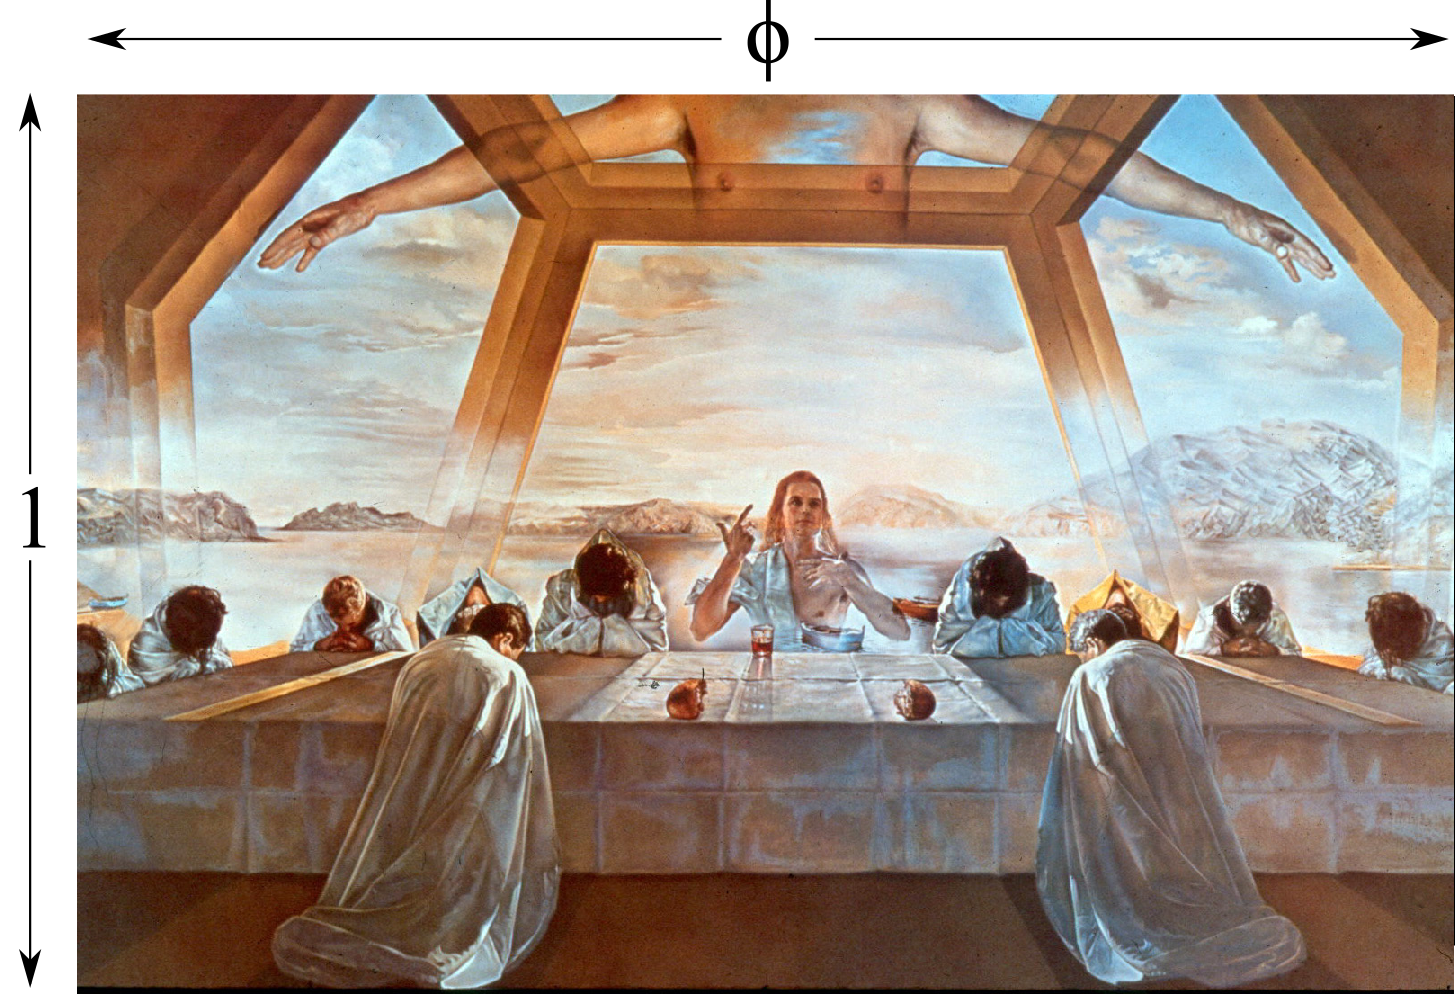 Salvador Dali painting, with side lengths labelled 1 and phi